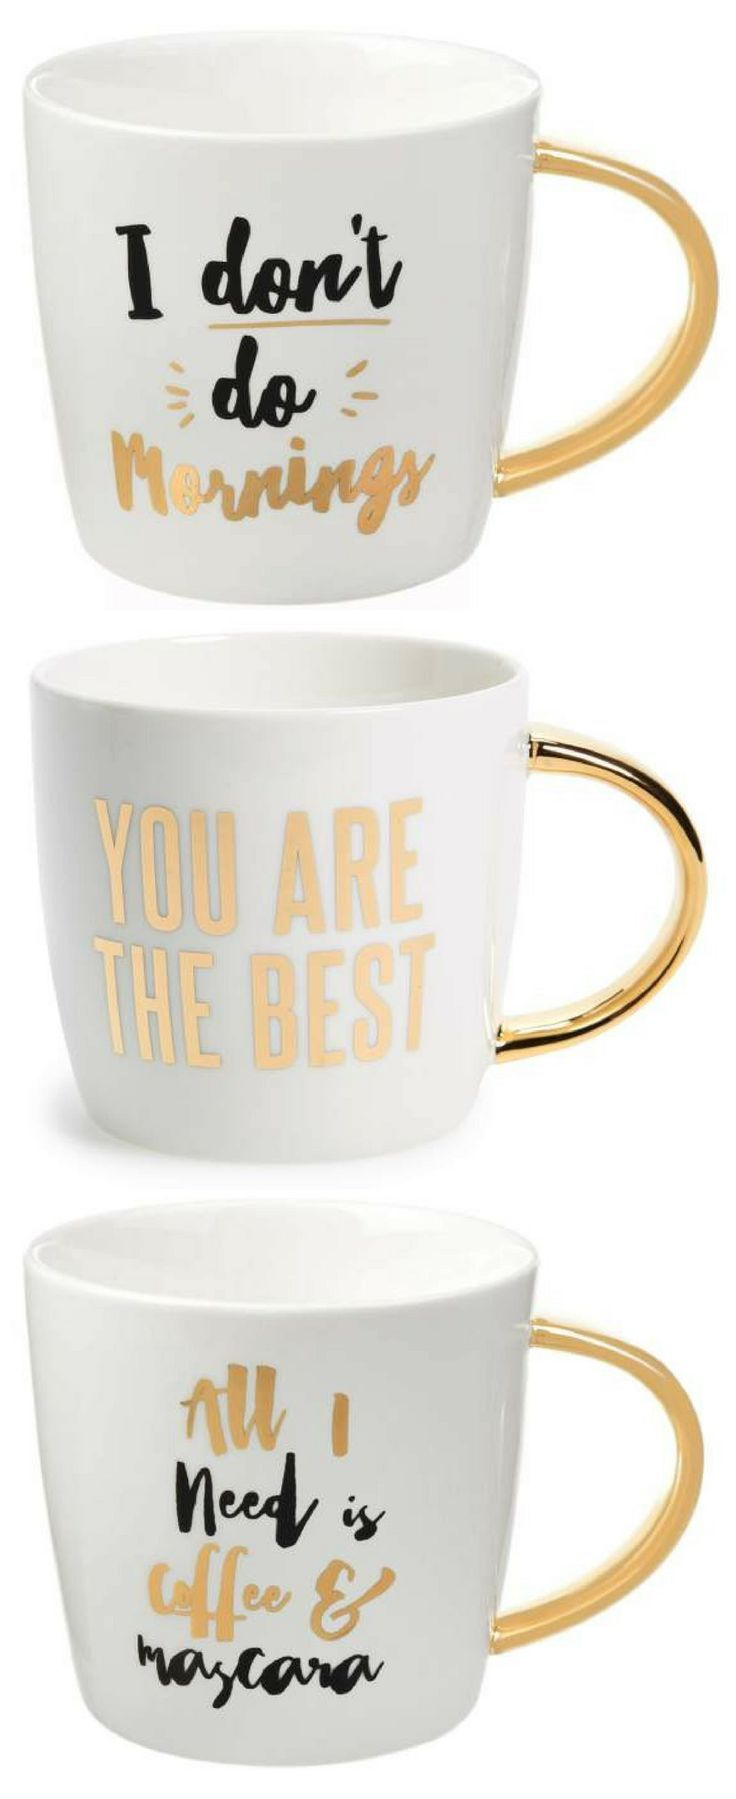 Gold accent coffee mugs with a little bit of inspiration. All I need is coffee and mascara, You are the best, I don't do mornings #coffee #golden #metallicgold #coffeemug #mascara #makeup #younique #marykay #gift #giftidea #affiliate